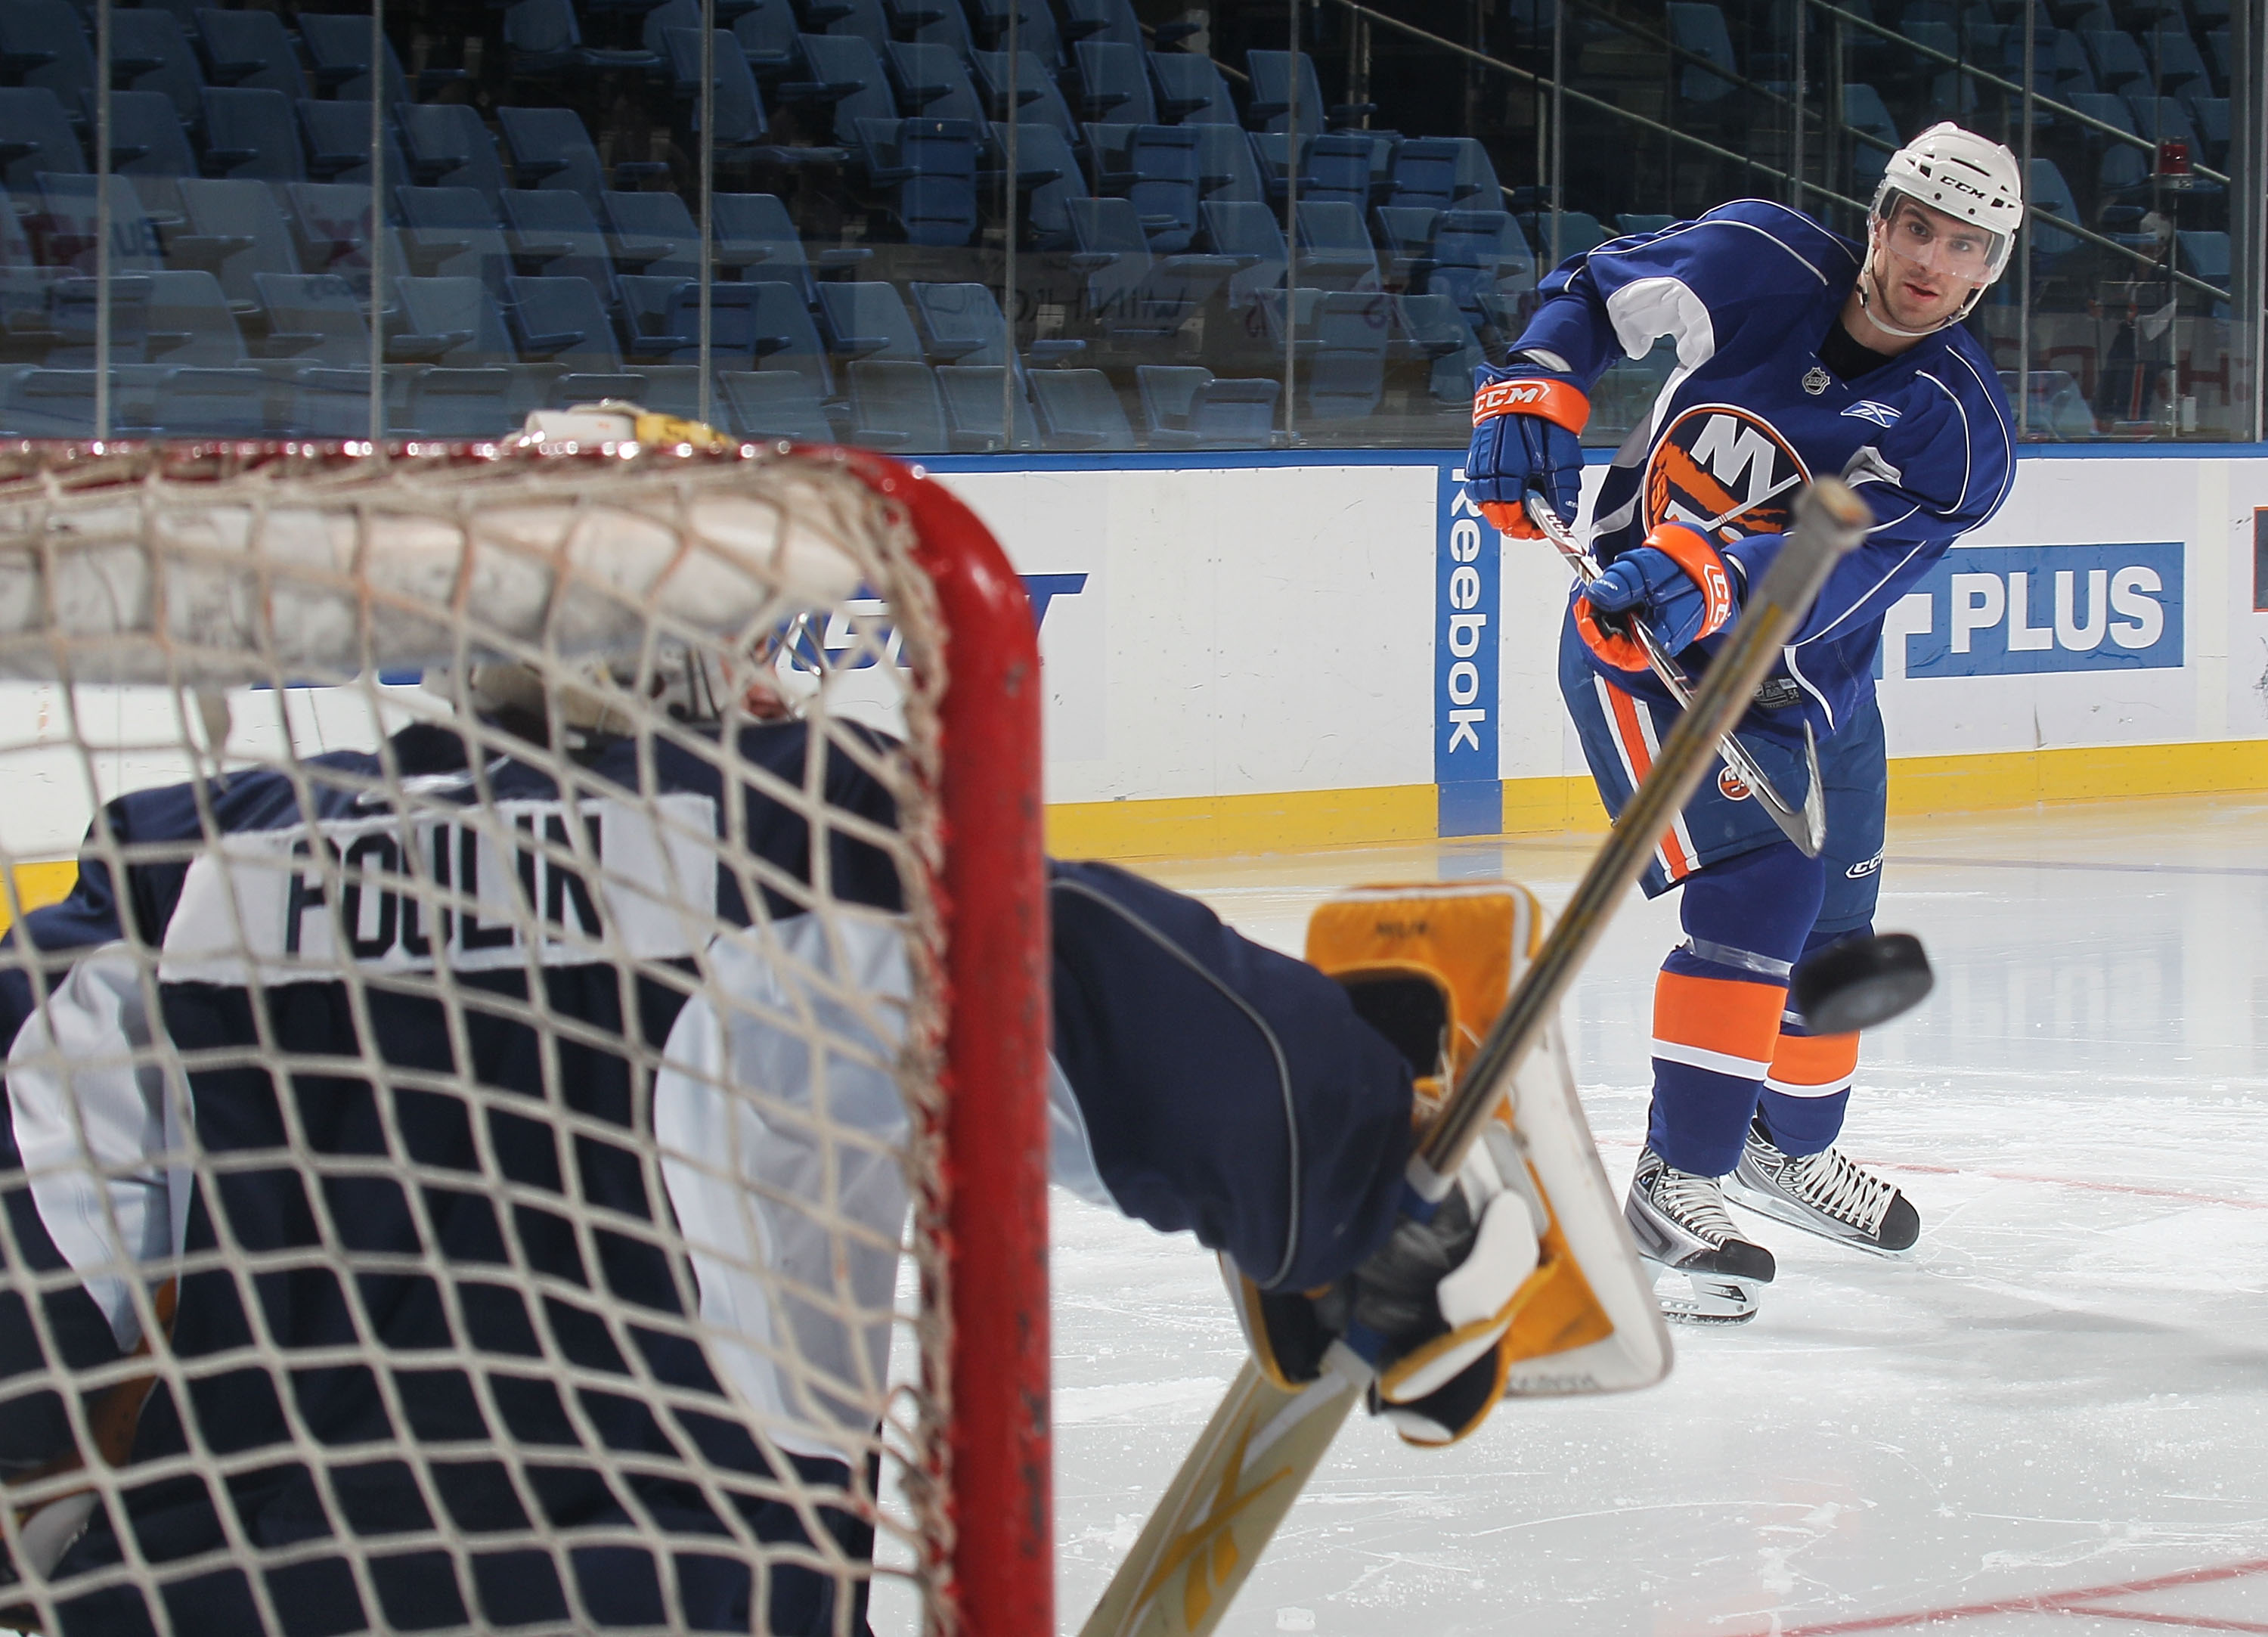 UNIONDALE, NY - JULY 07: John Tavares sends a shot at Kevin Poulin during the New York Islanders rookie camp at Nassau Veterans Memorial Coliseum on July 7, 2010 in Uniondale, New York.  (Photo by Bruce Bennett/Getty Images)